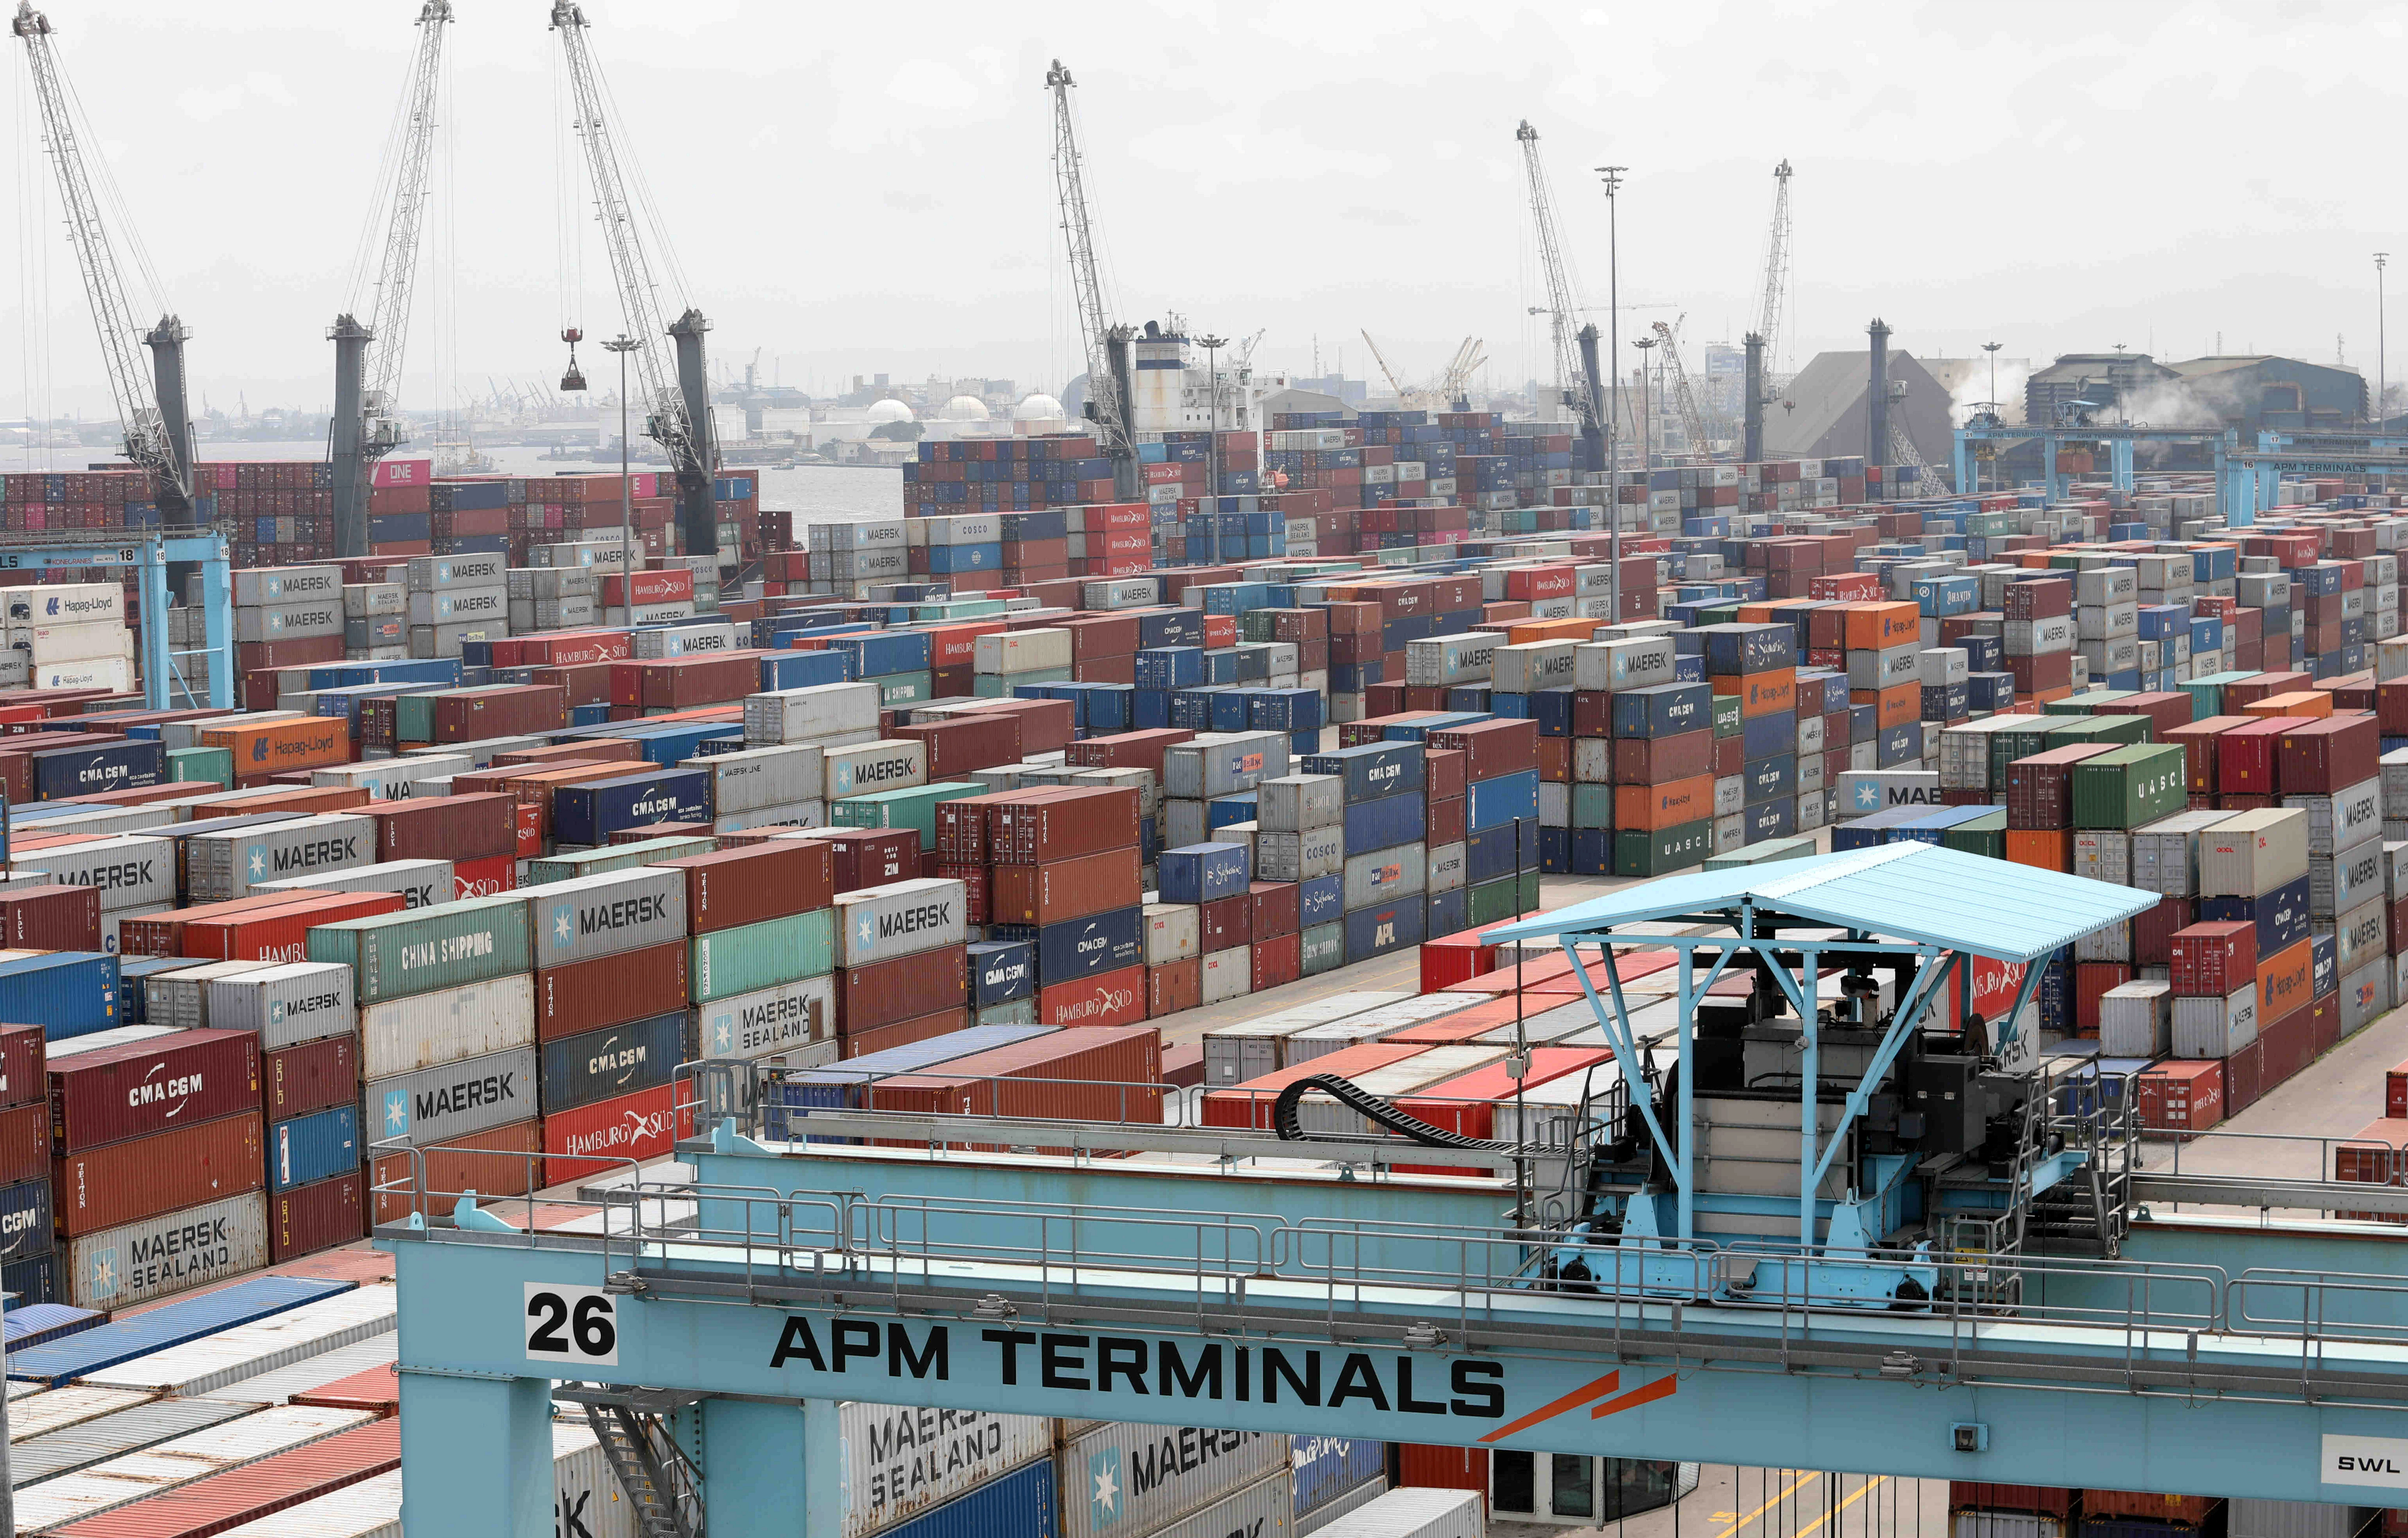 FILE PHOTO: Cranes and containers seen at APM Terminals at the gateway port in Apapa, Lagos, Nigeria July 30, 2019. Picture taken July 30, 2019. REUTERS/Temilade Adelaja/File Photo